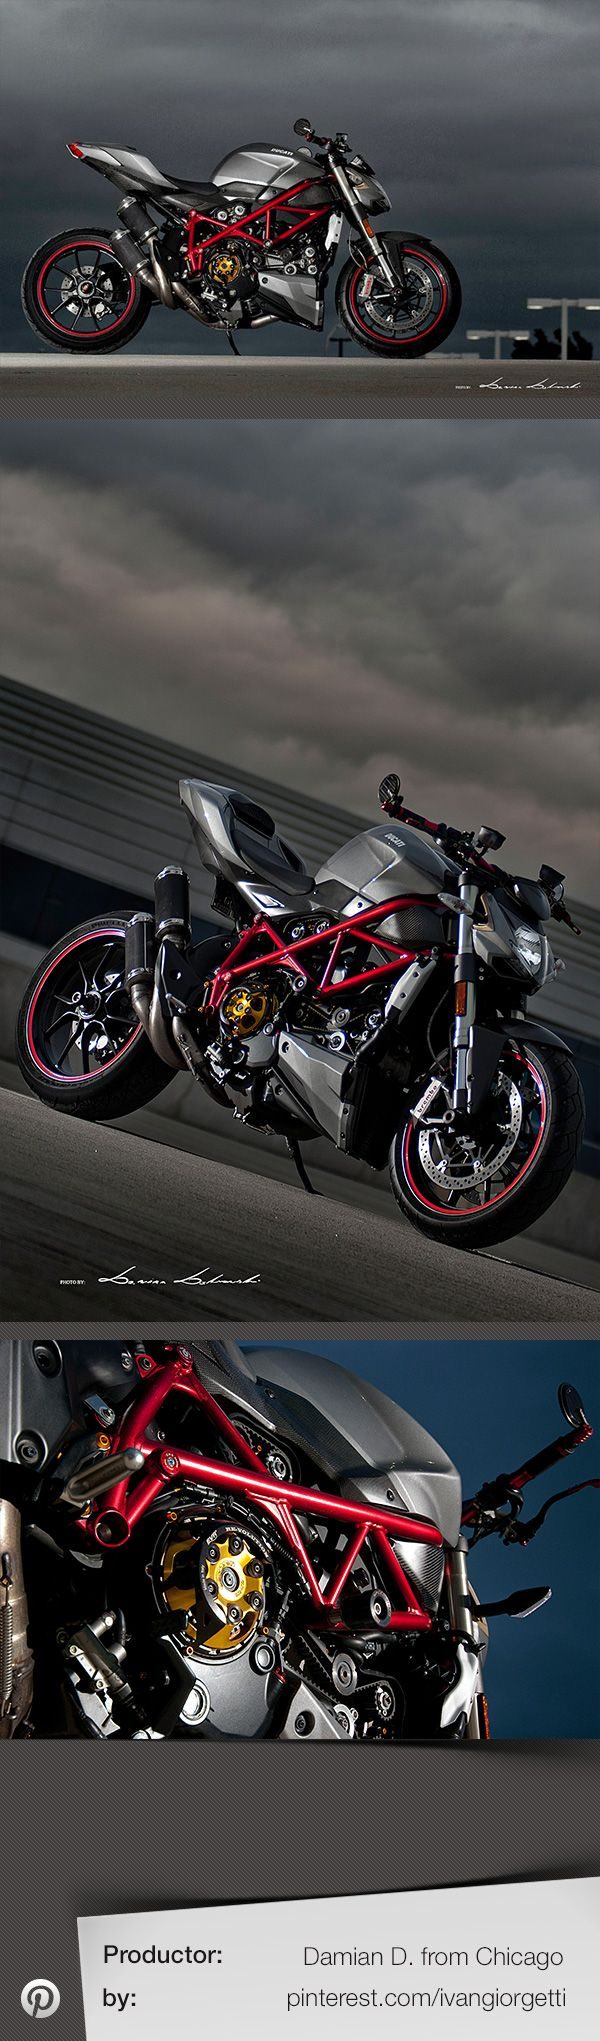 Ducati Streetfighter S by Damian Dabrowski from Chicago